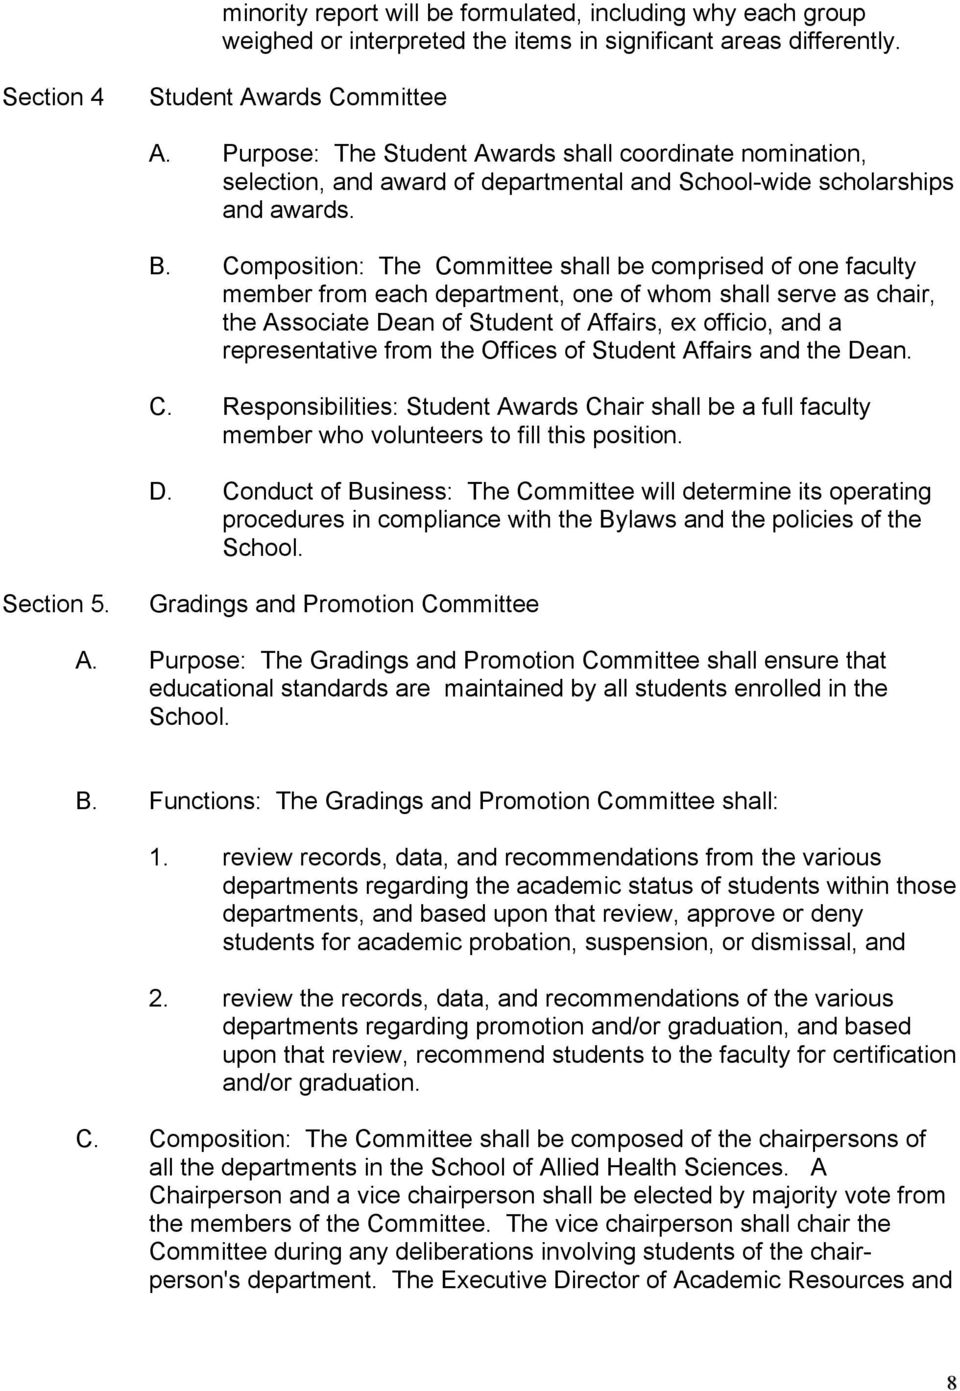 Composition: The Committee shall be comprised of one faculty member from each department, one of whom shall serve as chair, the Associate Dean of Student of Affairs, ex officio, and a representative